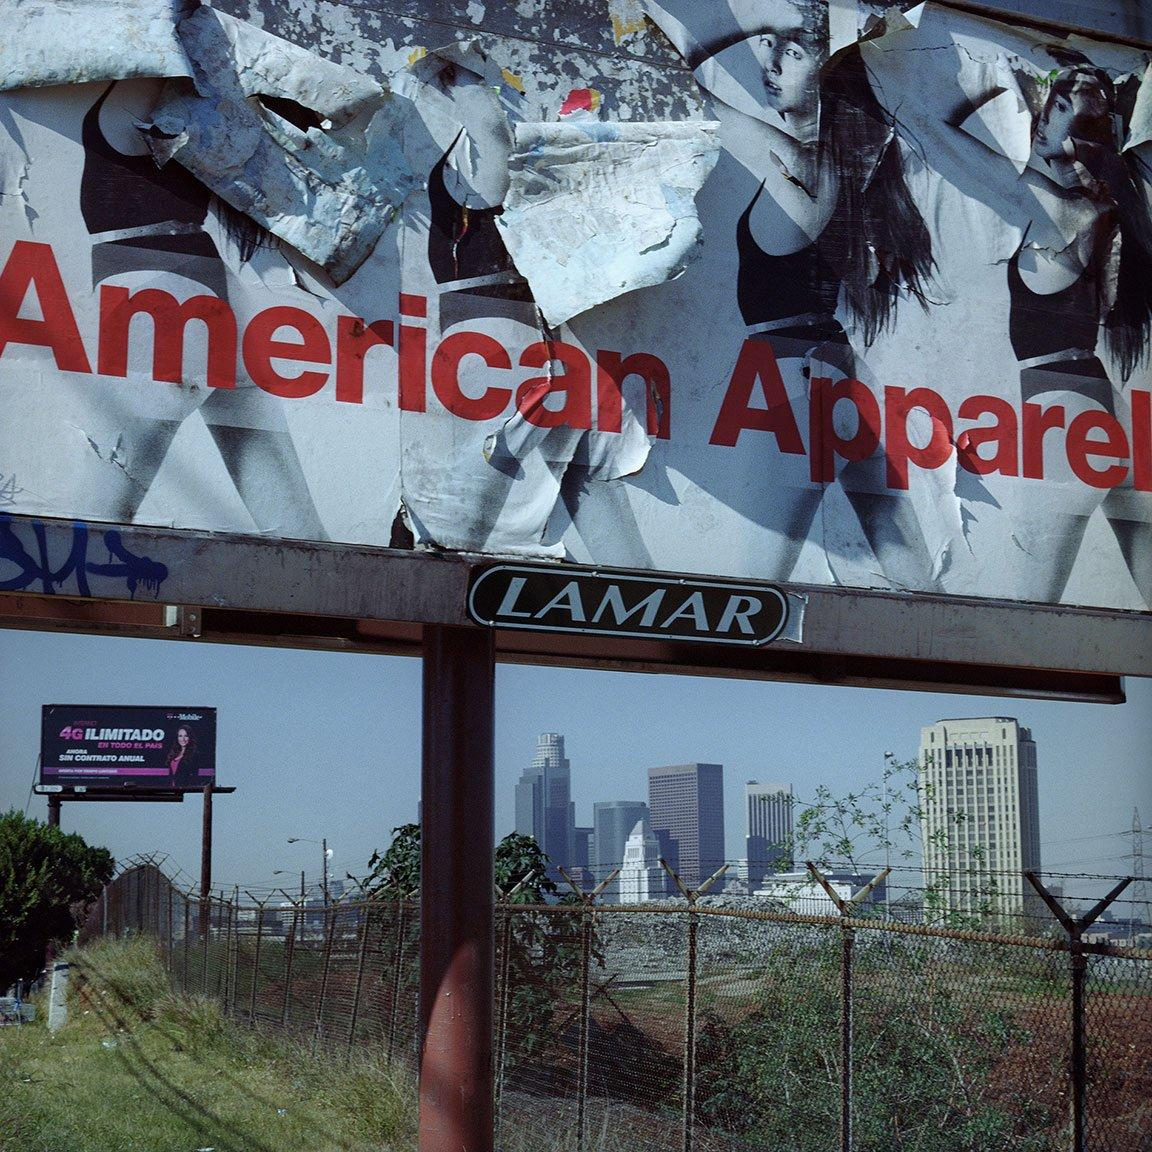 34-TheAmericanApparel-ThomasAlleman-Website-121013